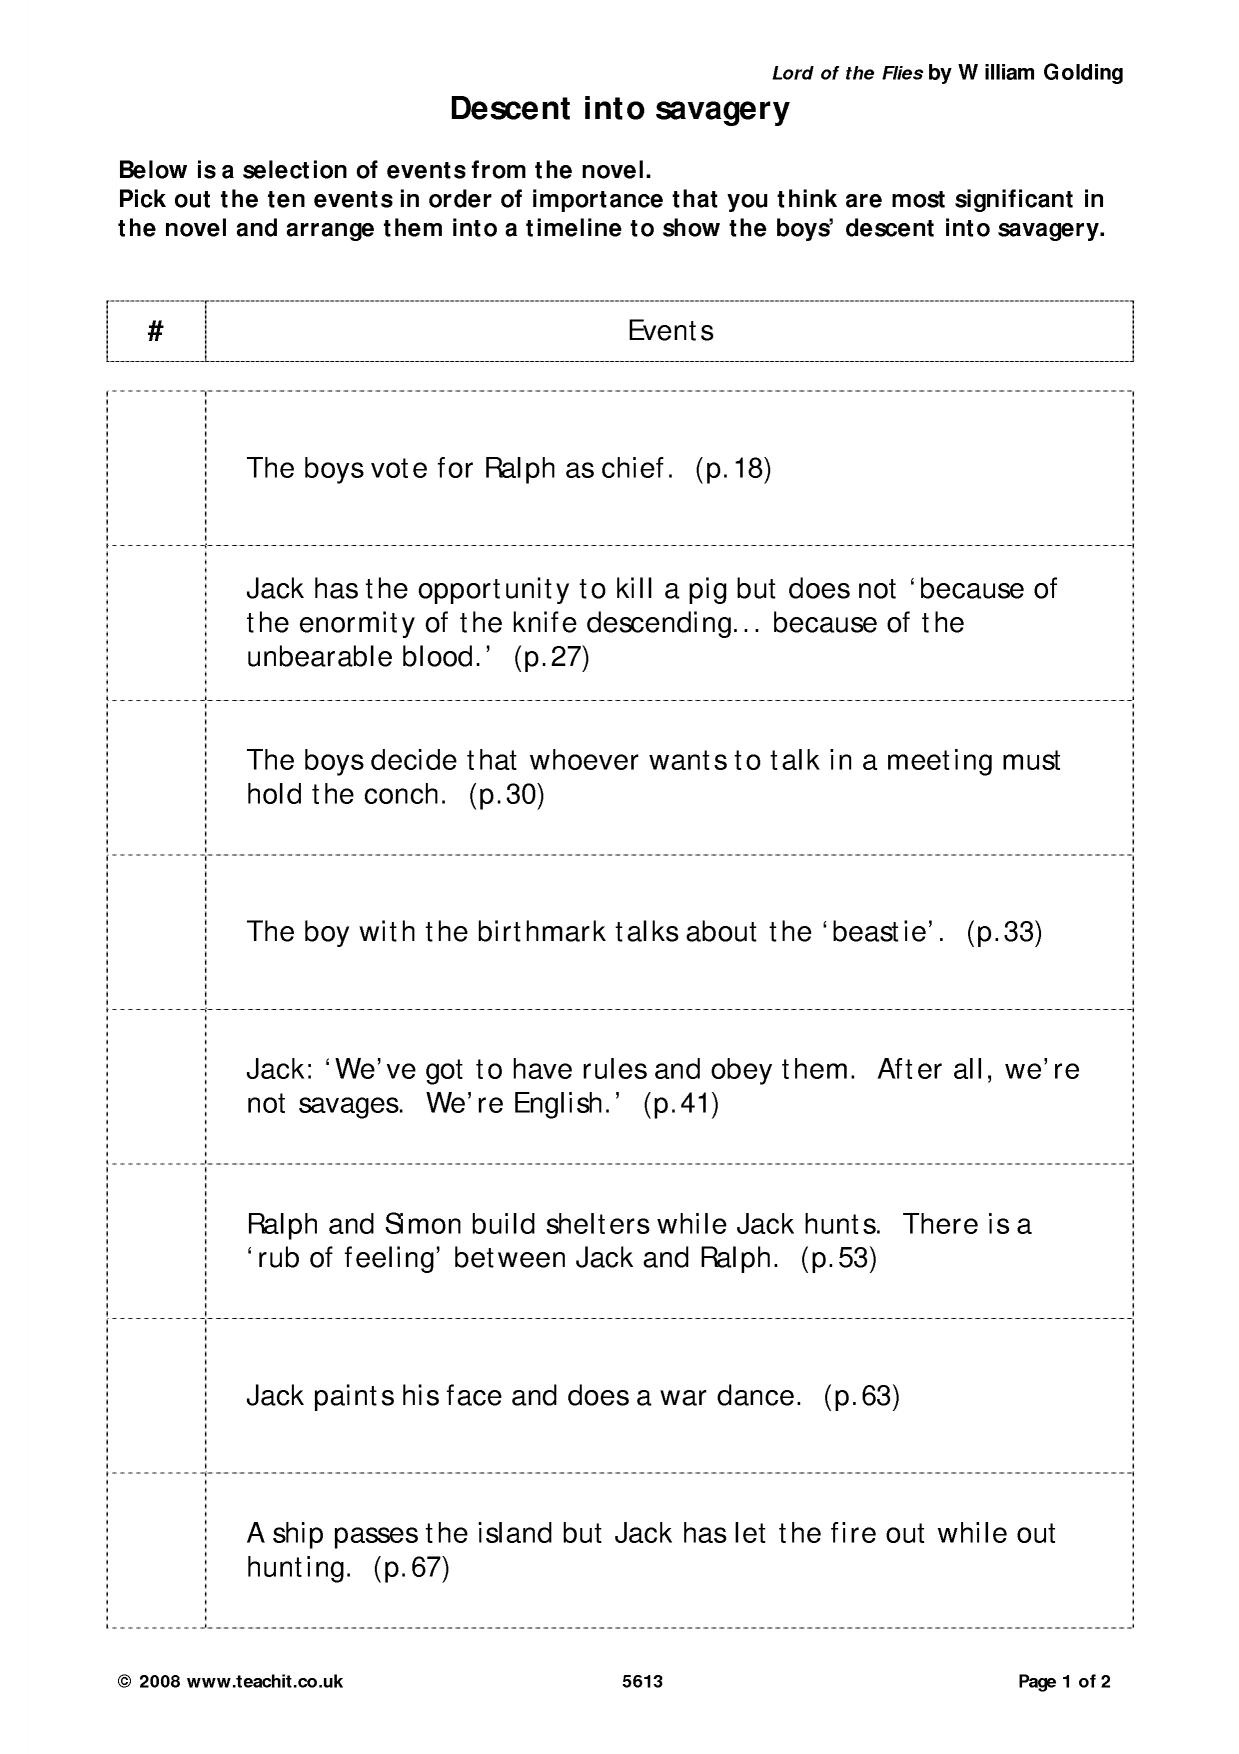 worksheet Sequence Of Events Worksheet lord of the flies by william golding ks4 prose key stage 4 1 preview